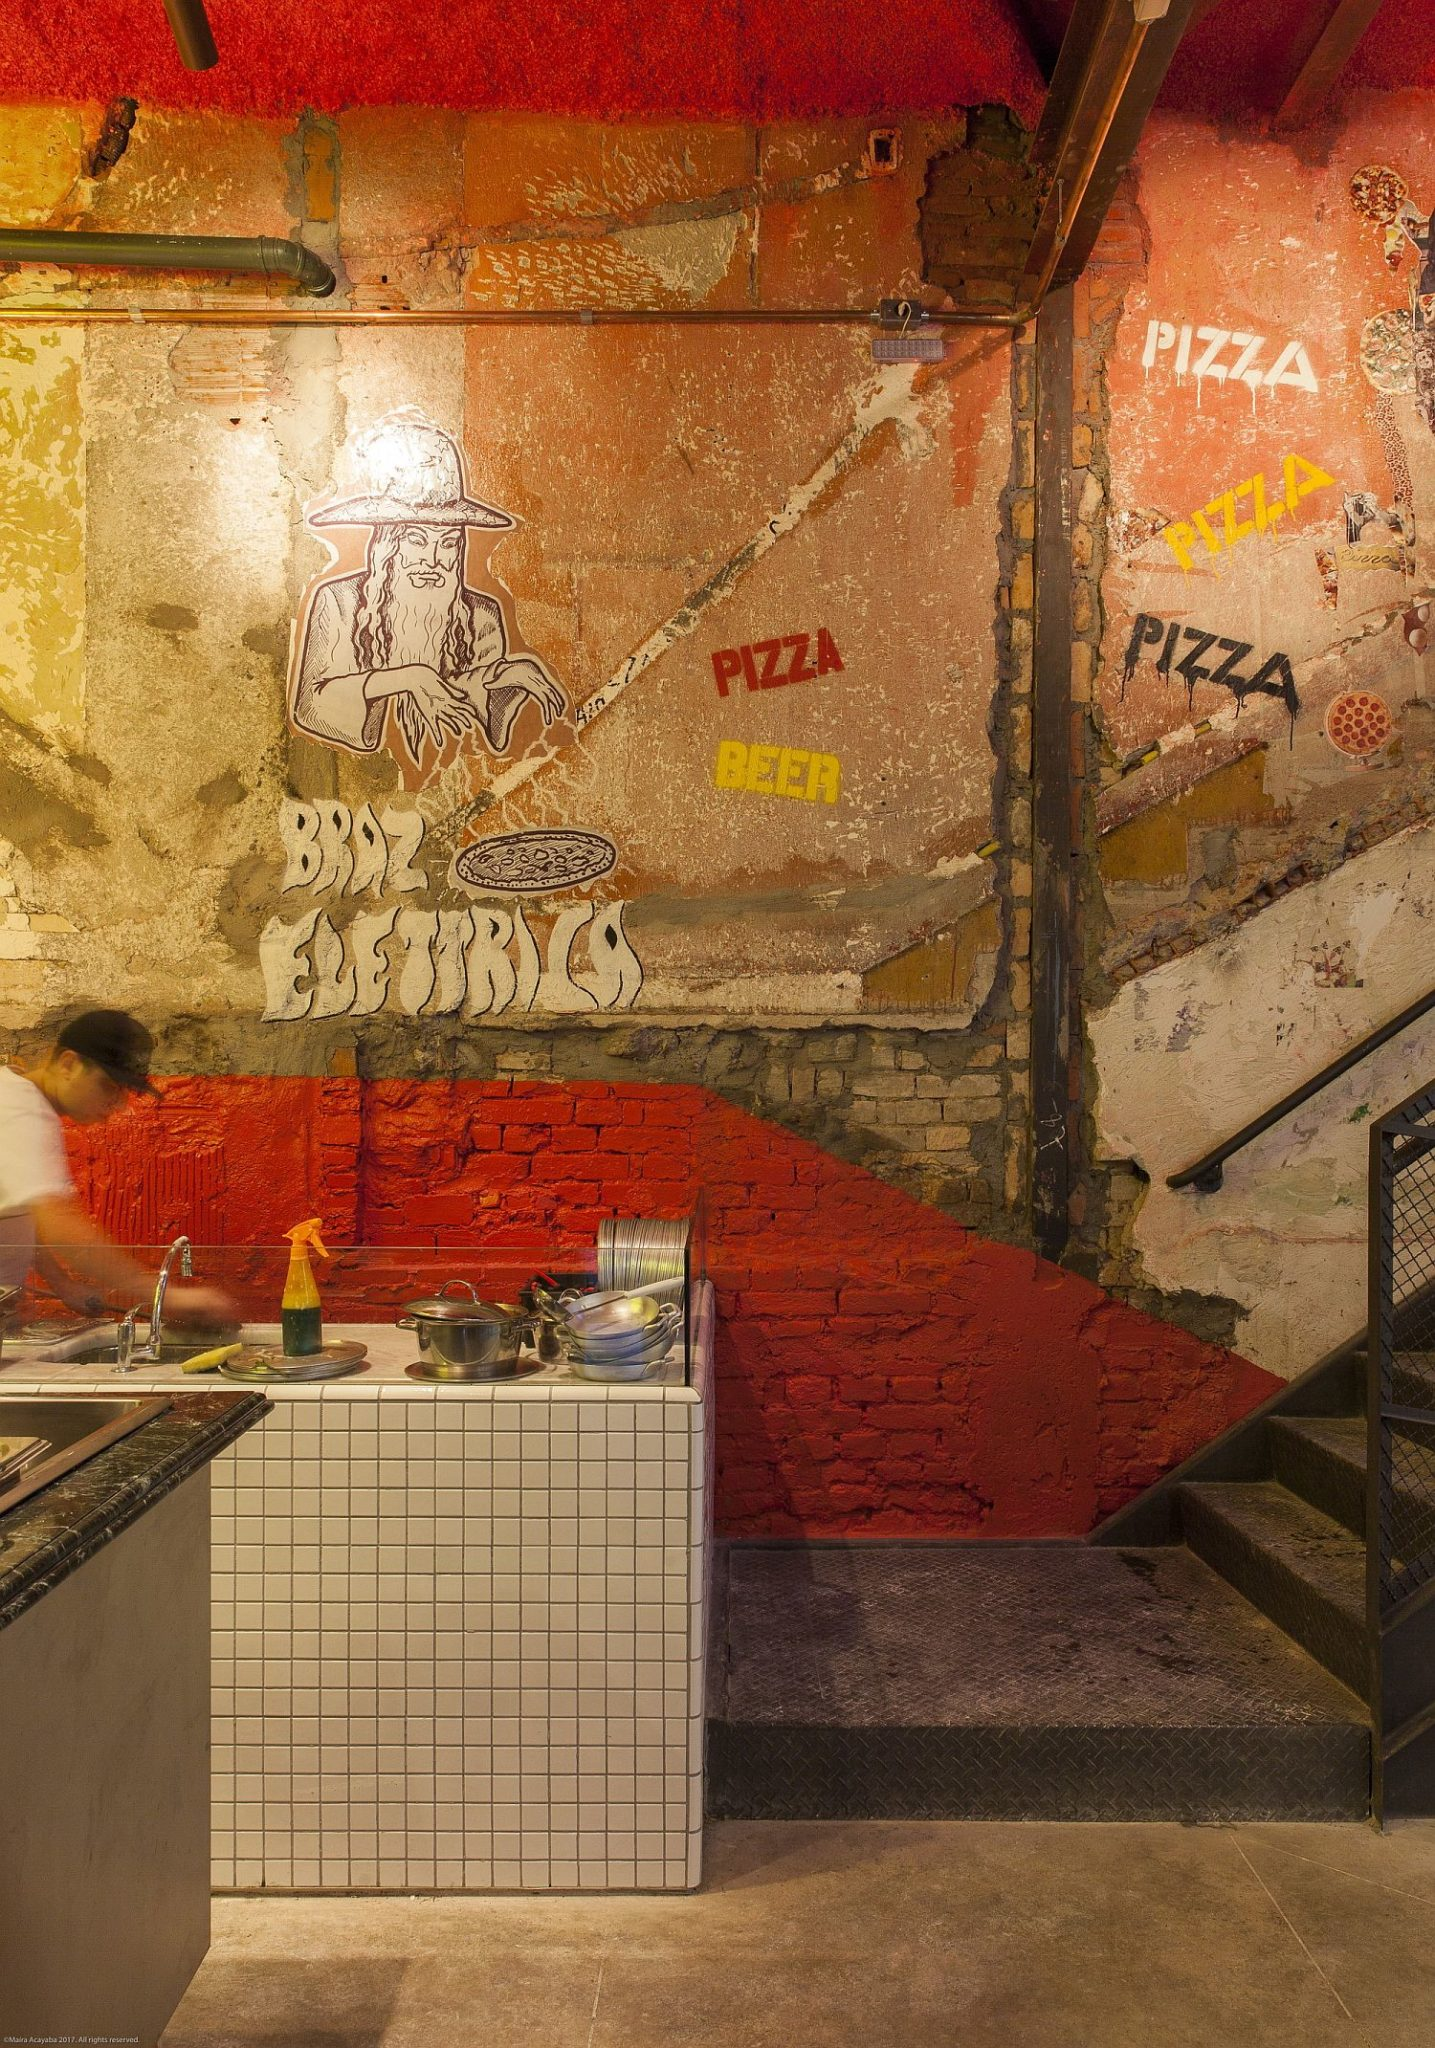 Street-art-inspired-interiors-look-both-hip-and-casual